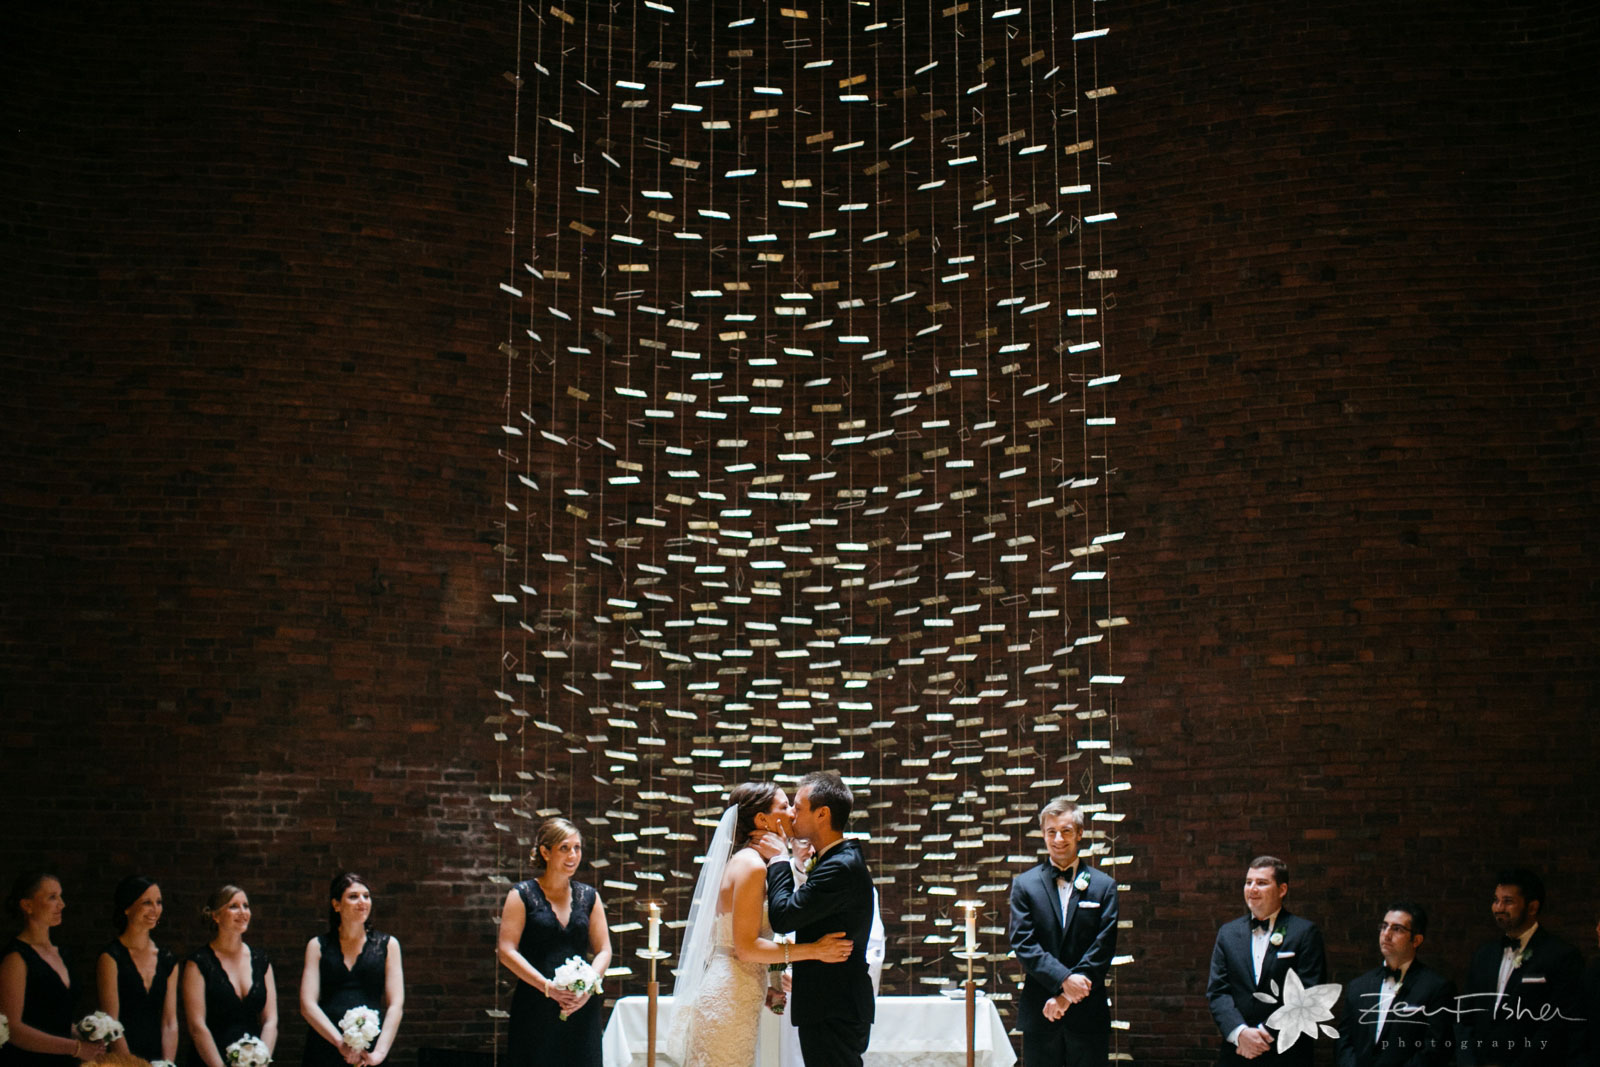 Bride and groom pull each other in lovingly and kiss at altar in front of large artistic sculture.